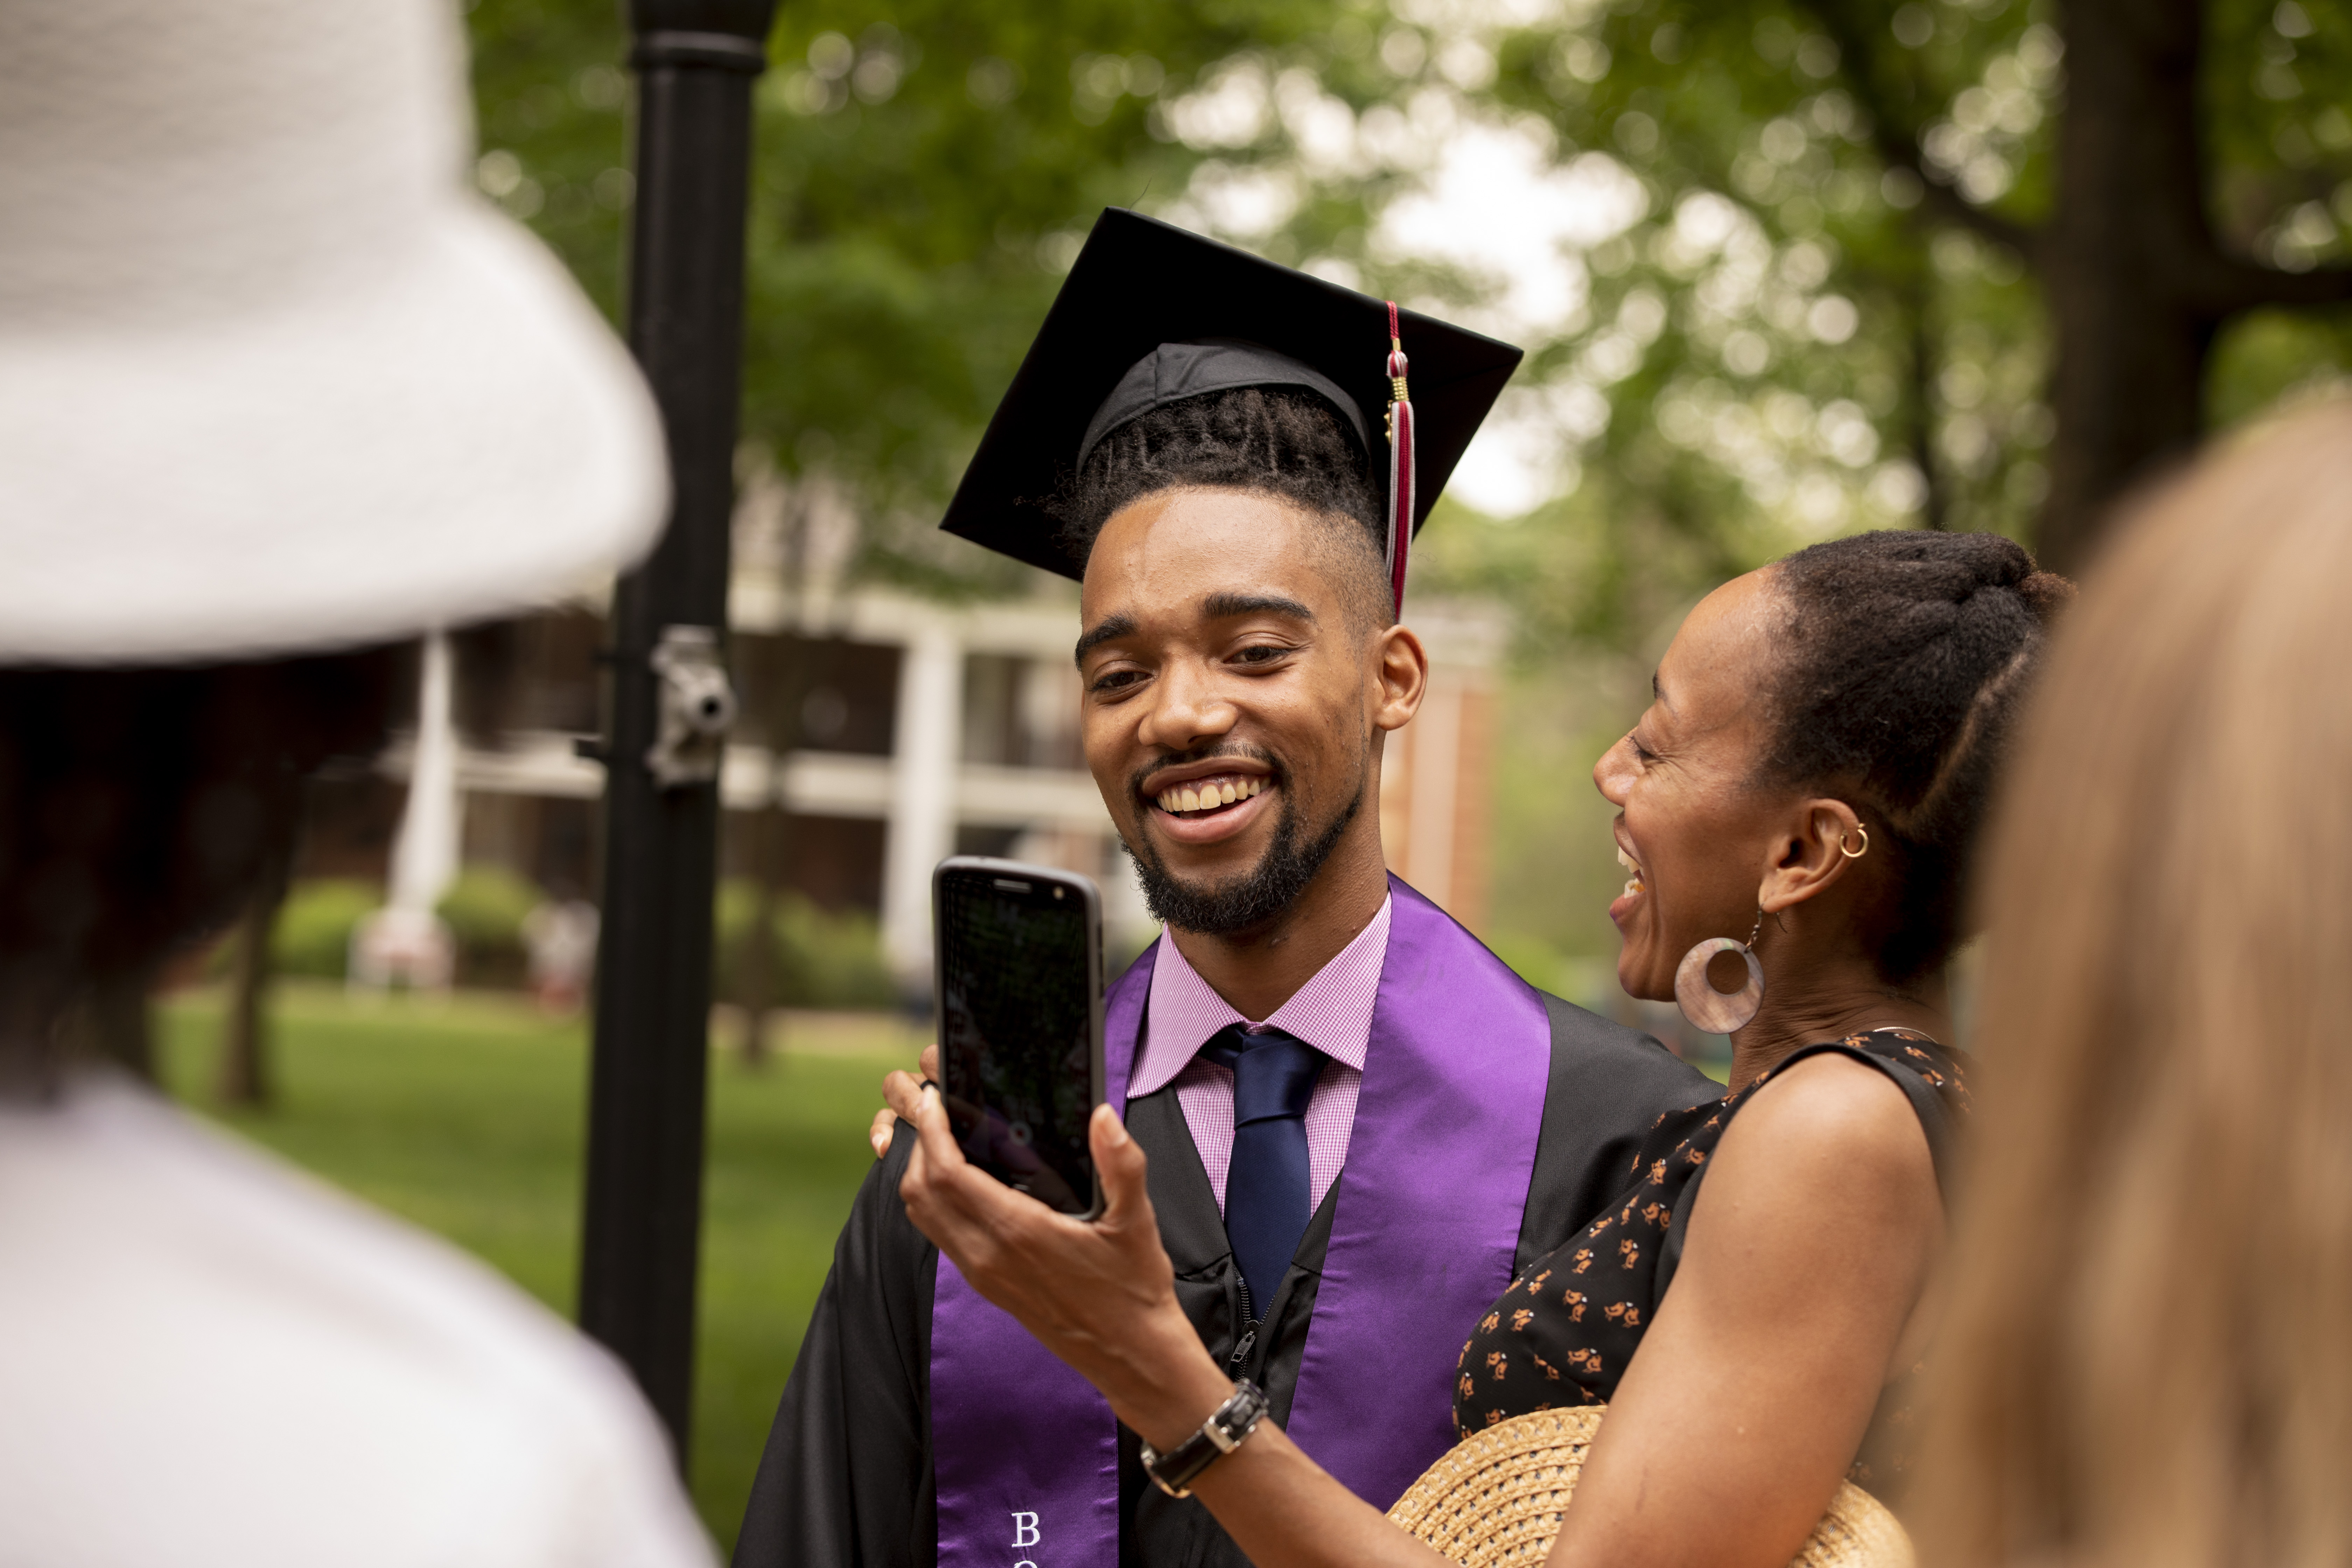 A friend shows a student a phone photo after Commencement.